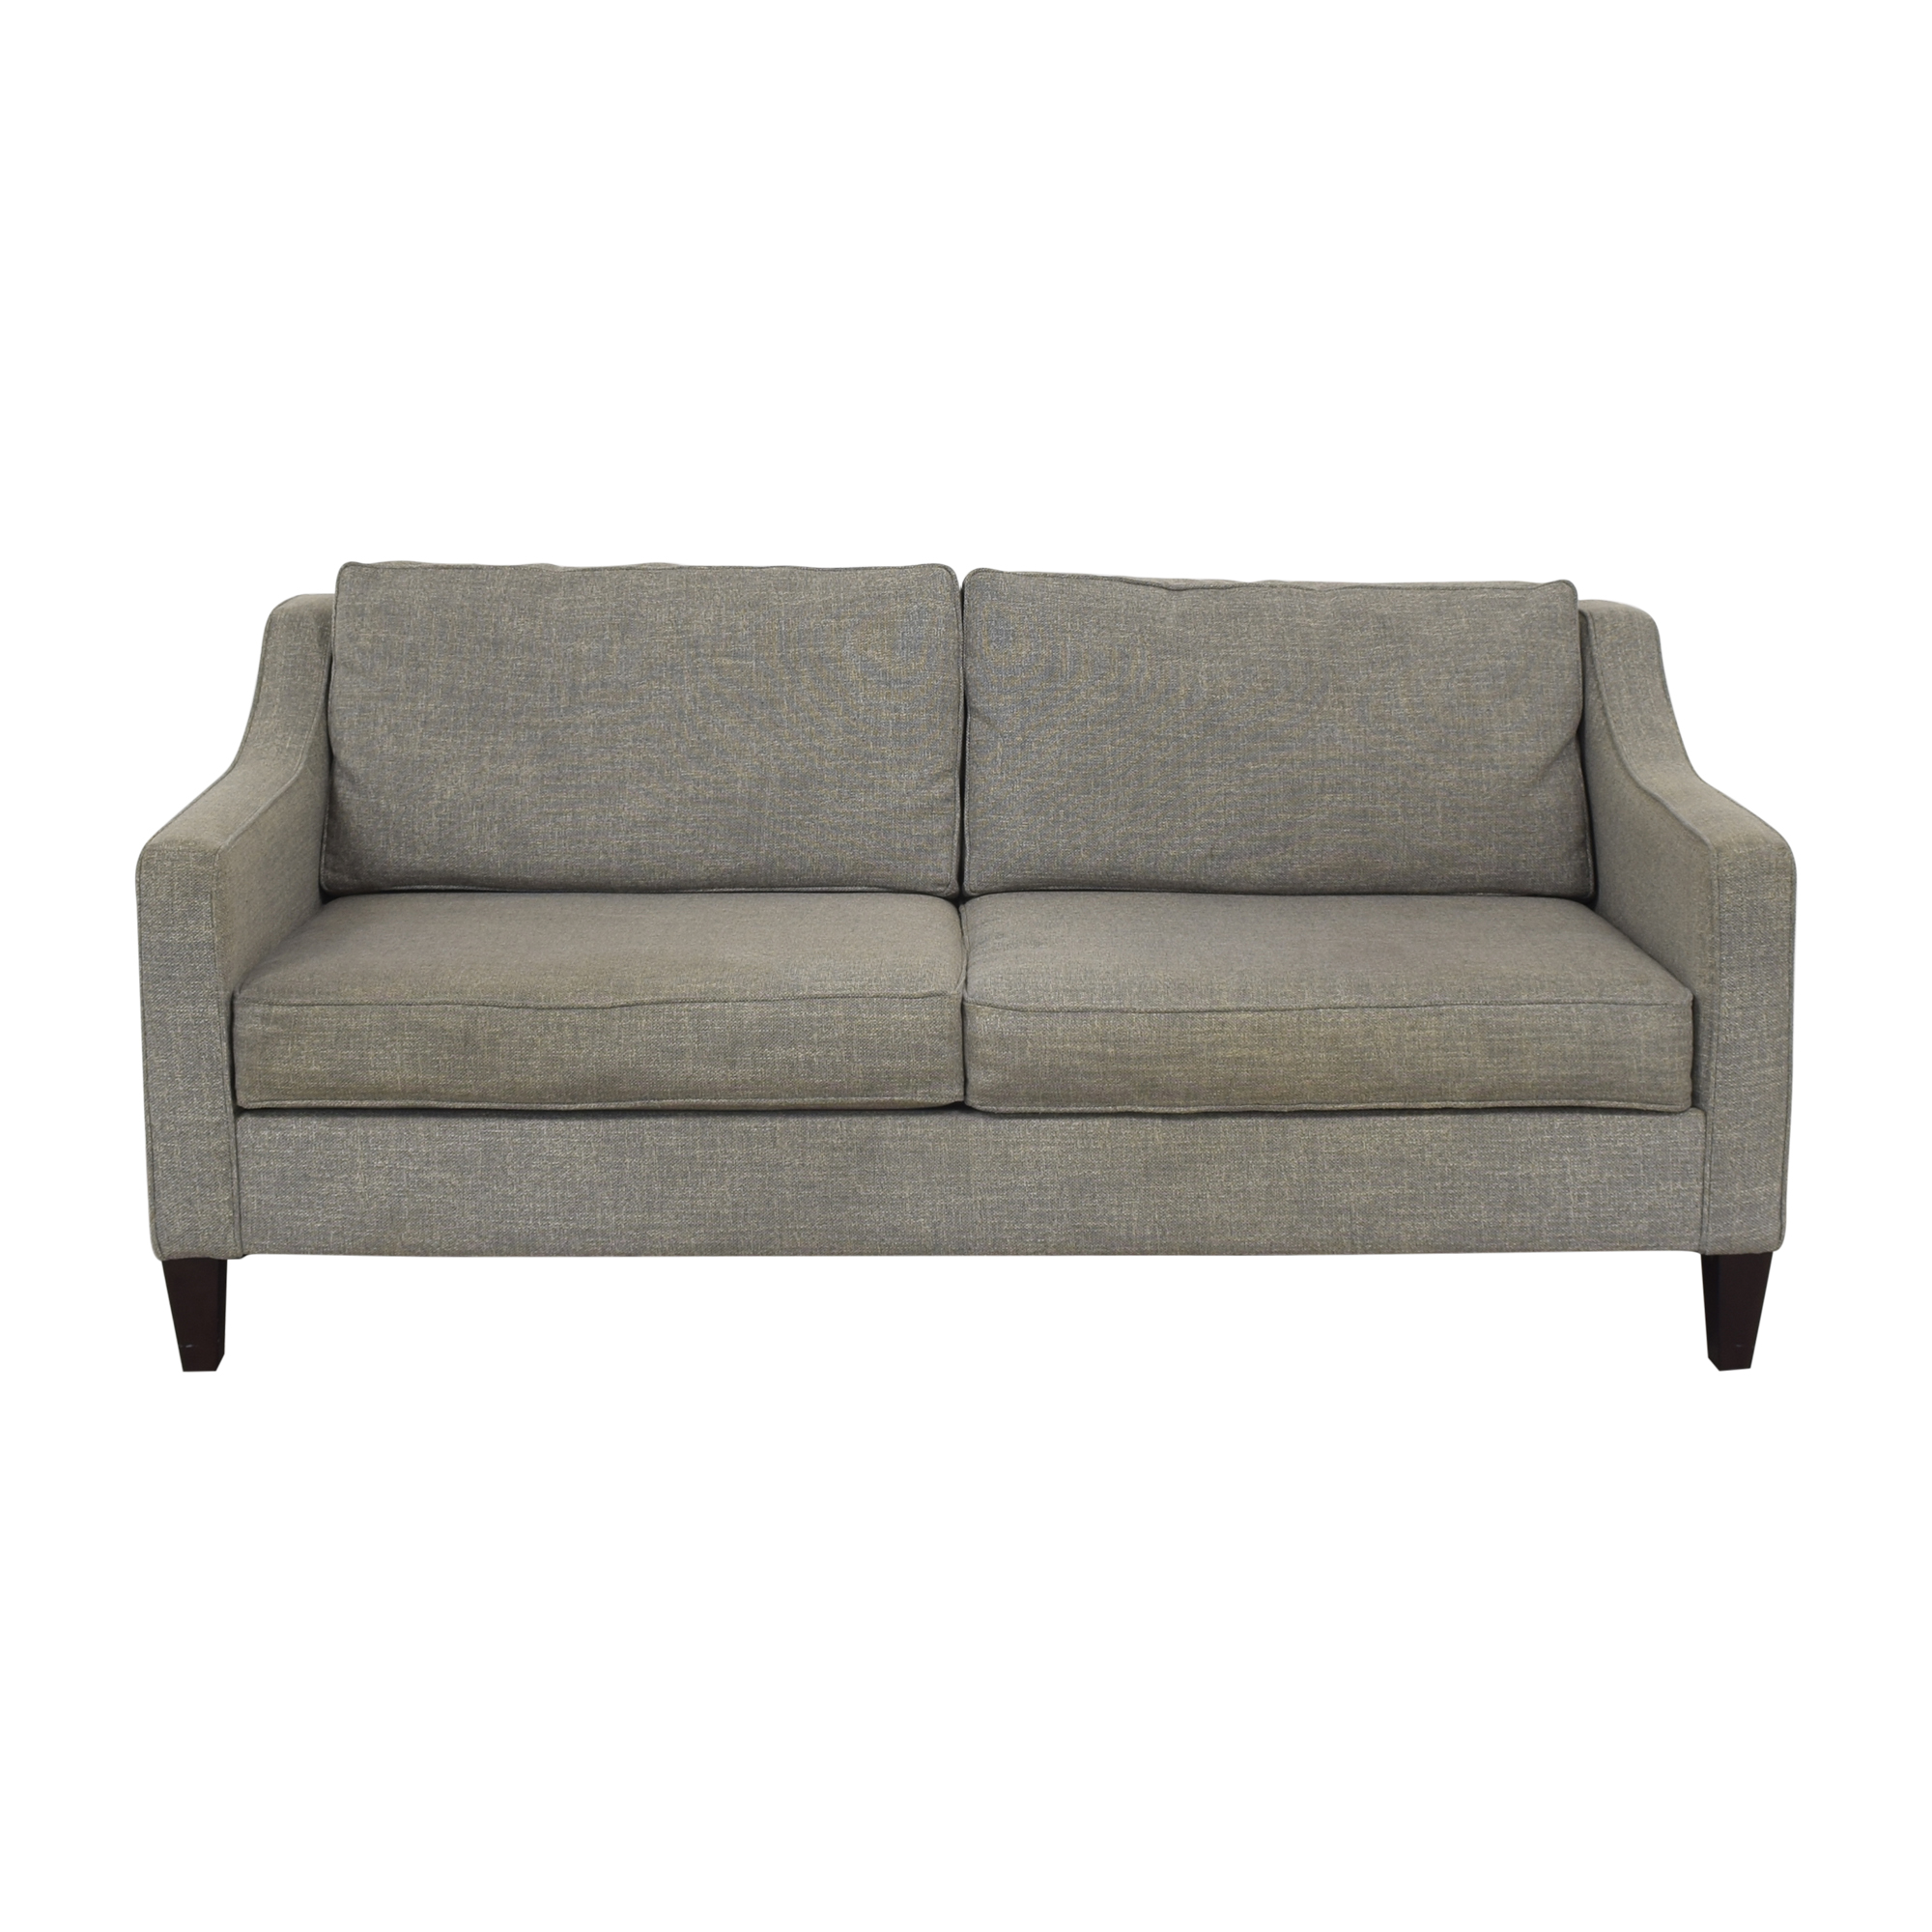 buy West Elm Paidge Sofa West Elm